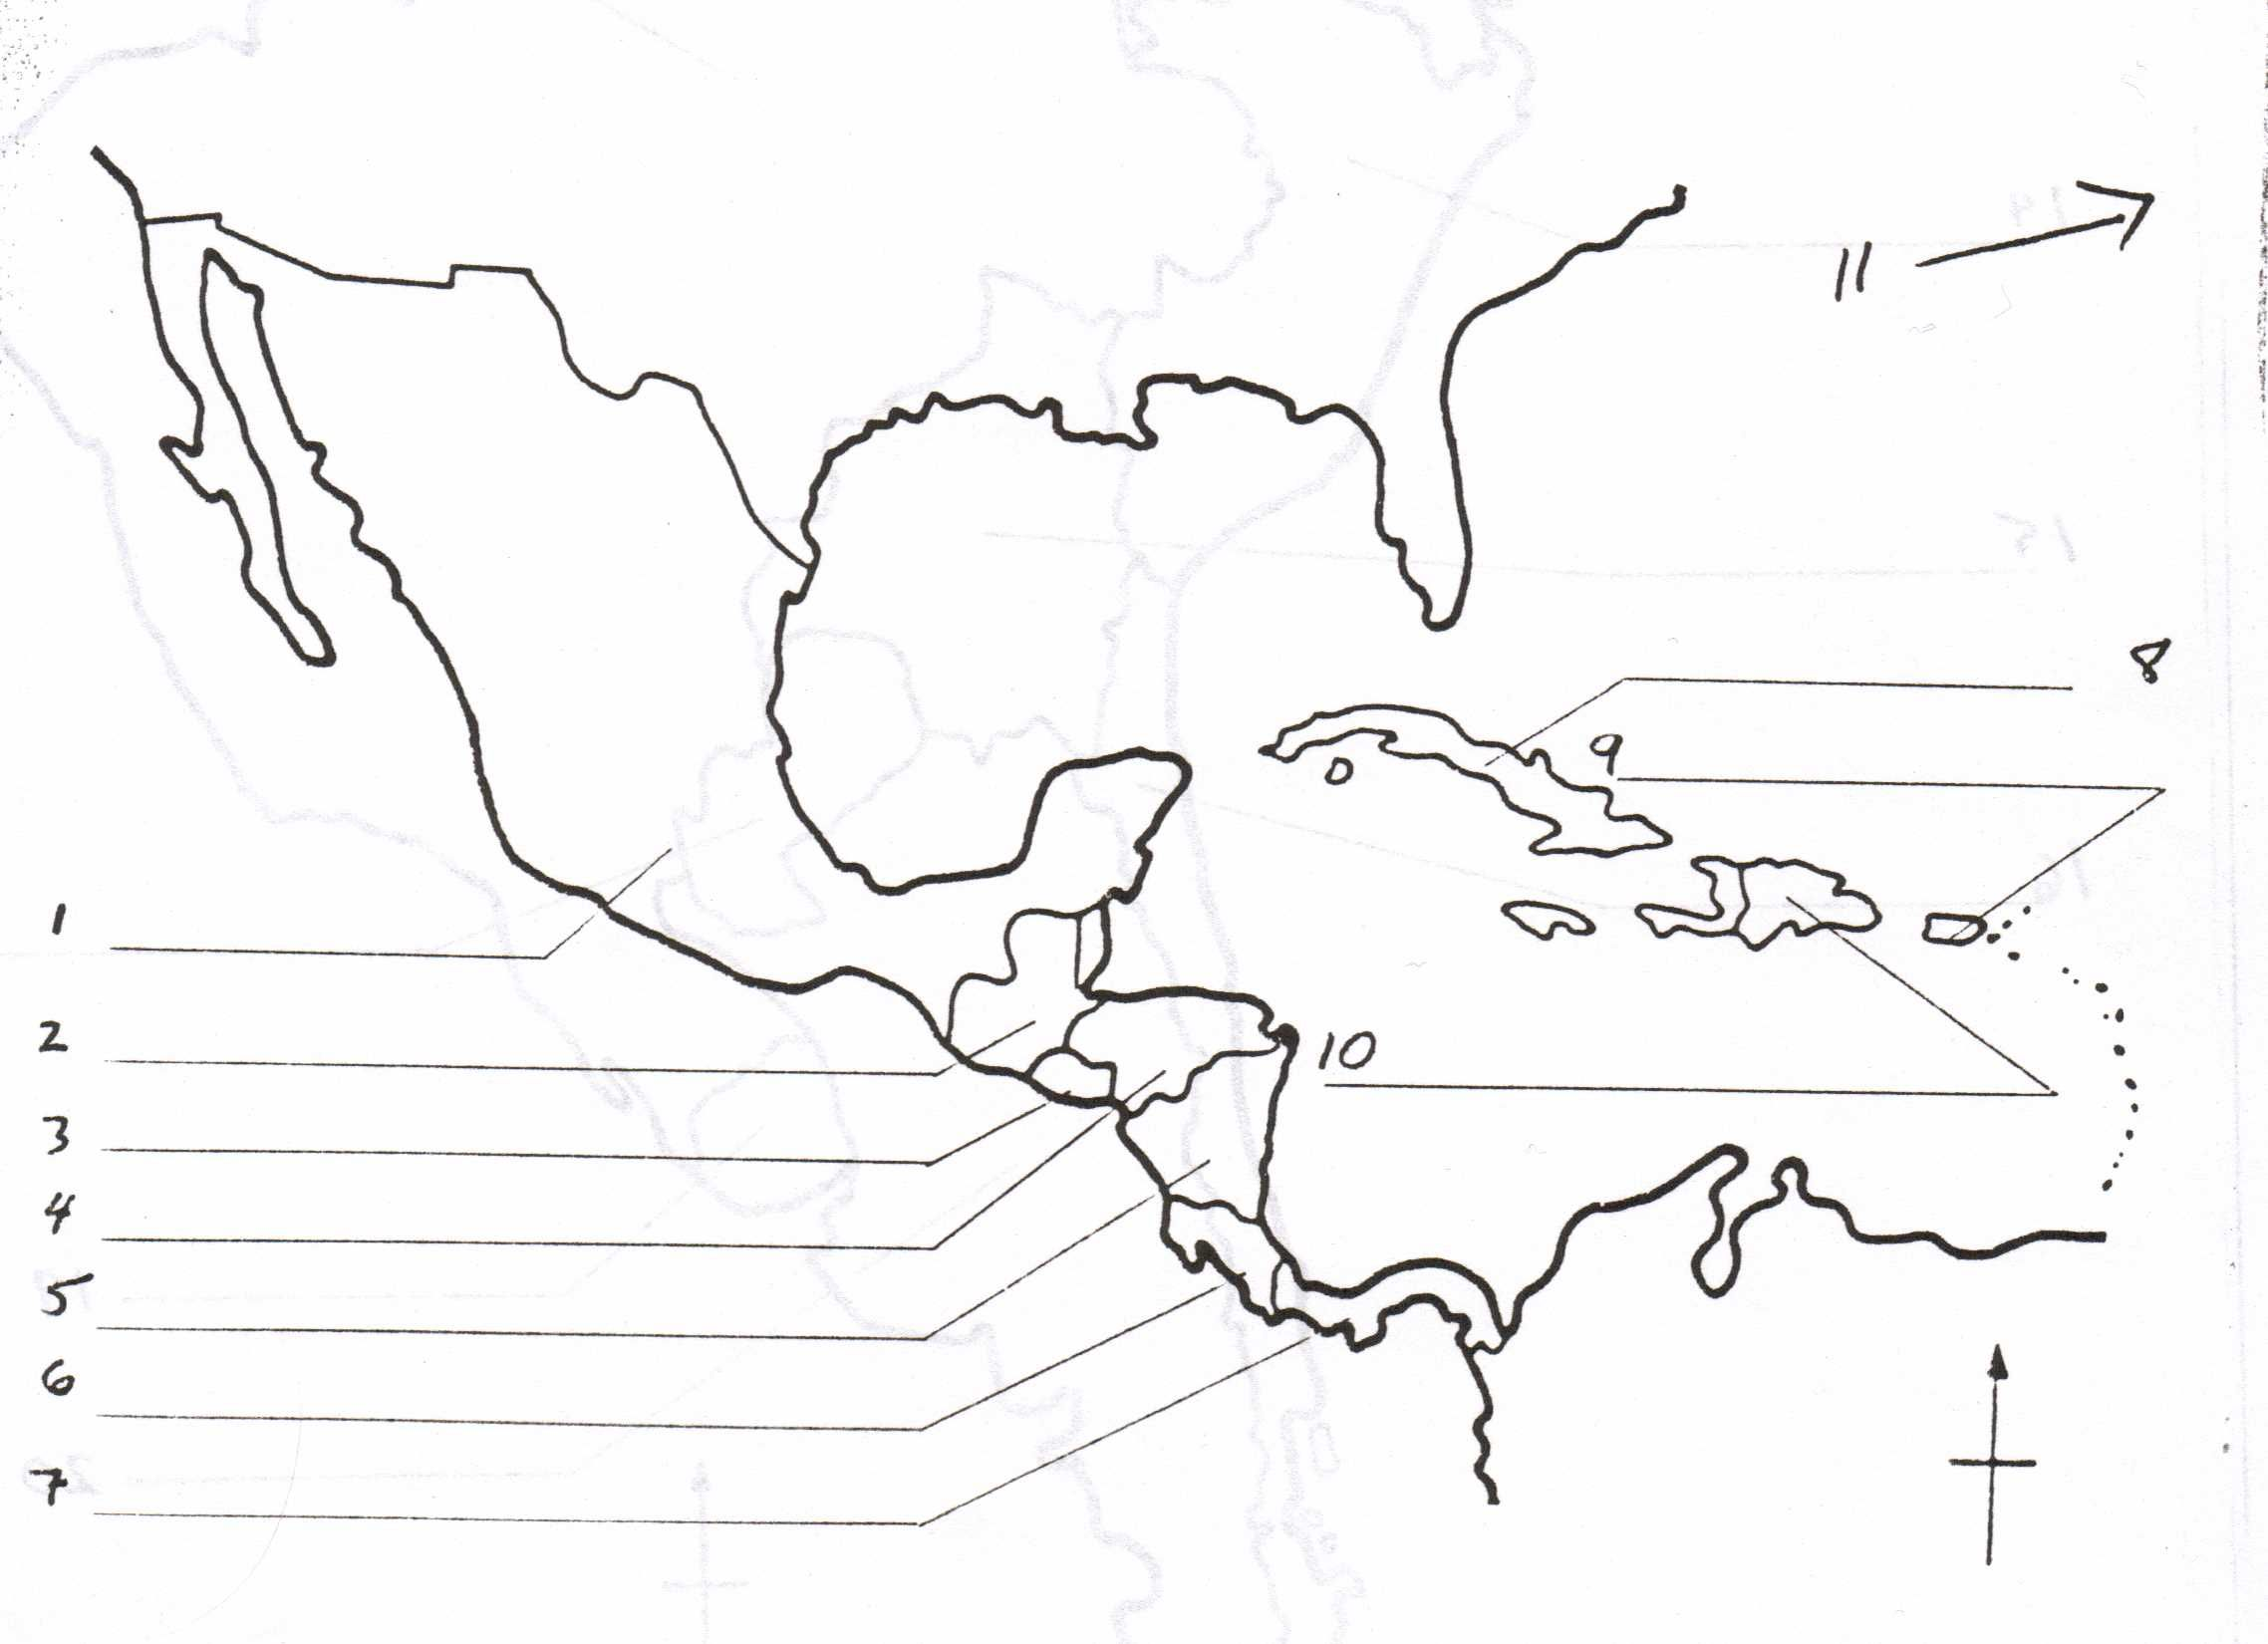 Blank Map Of Central America And Caribbean Islands With